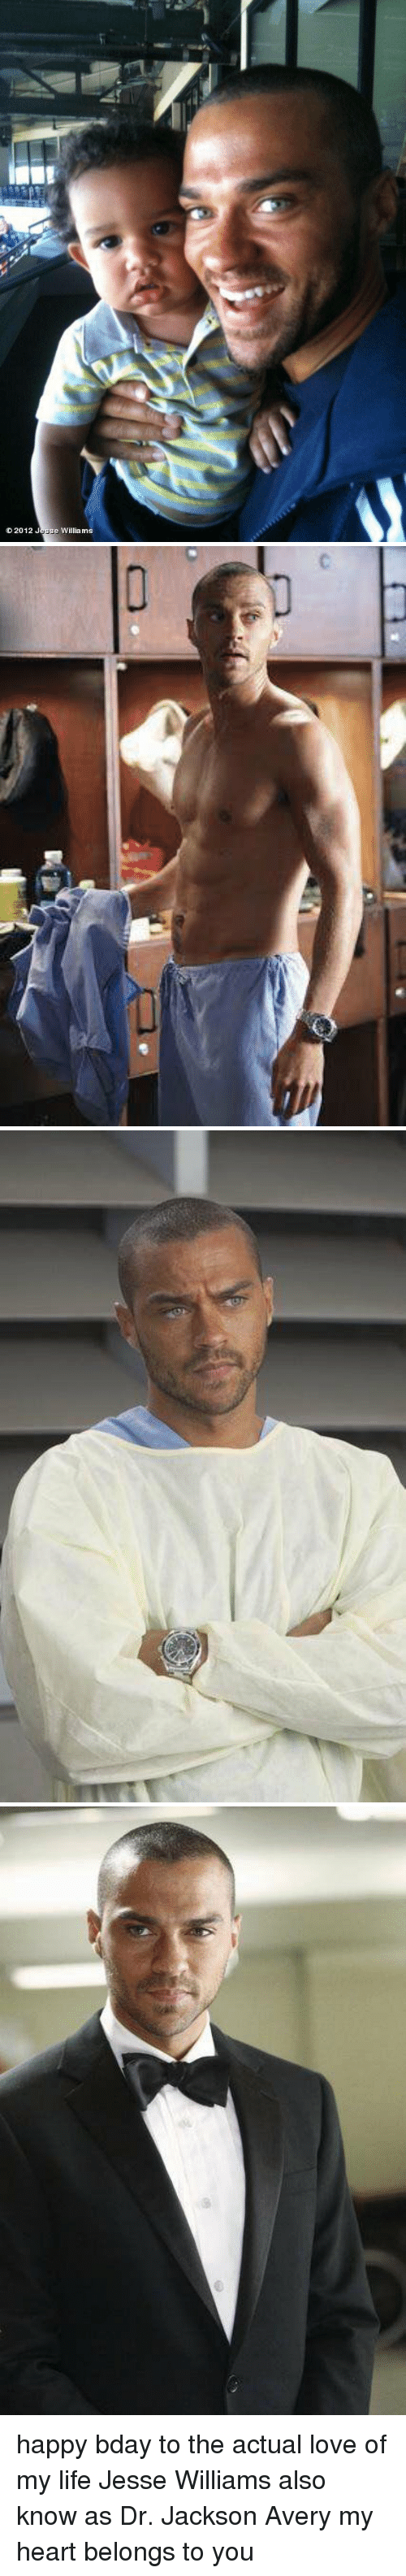 Life, Love, and Happy: 2012 Jesse Williams   U   9 happy bday to the actual love of my life Jesse Williams also know as Dr. Jackson Avery my heart belongs to you